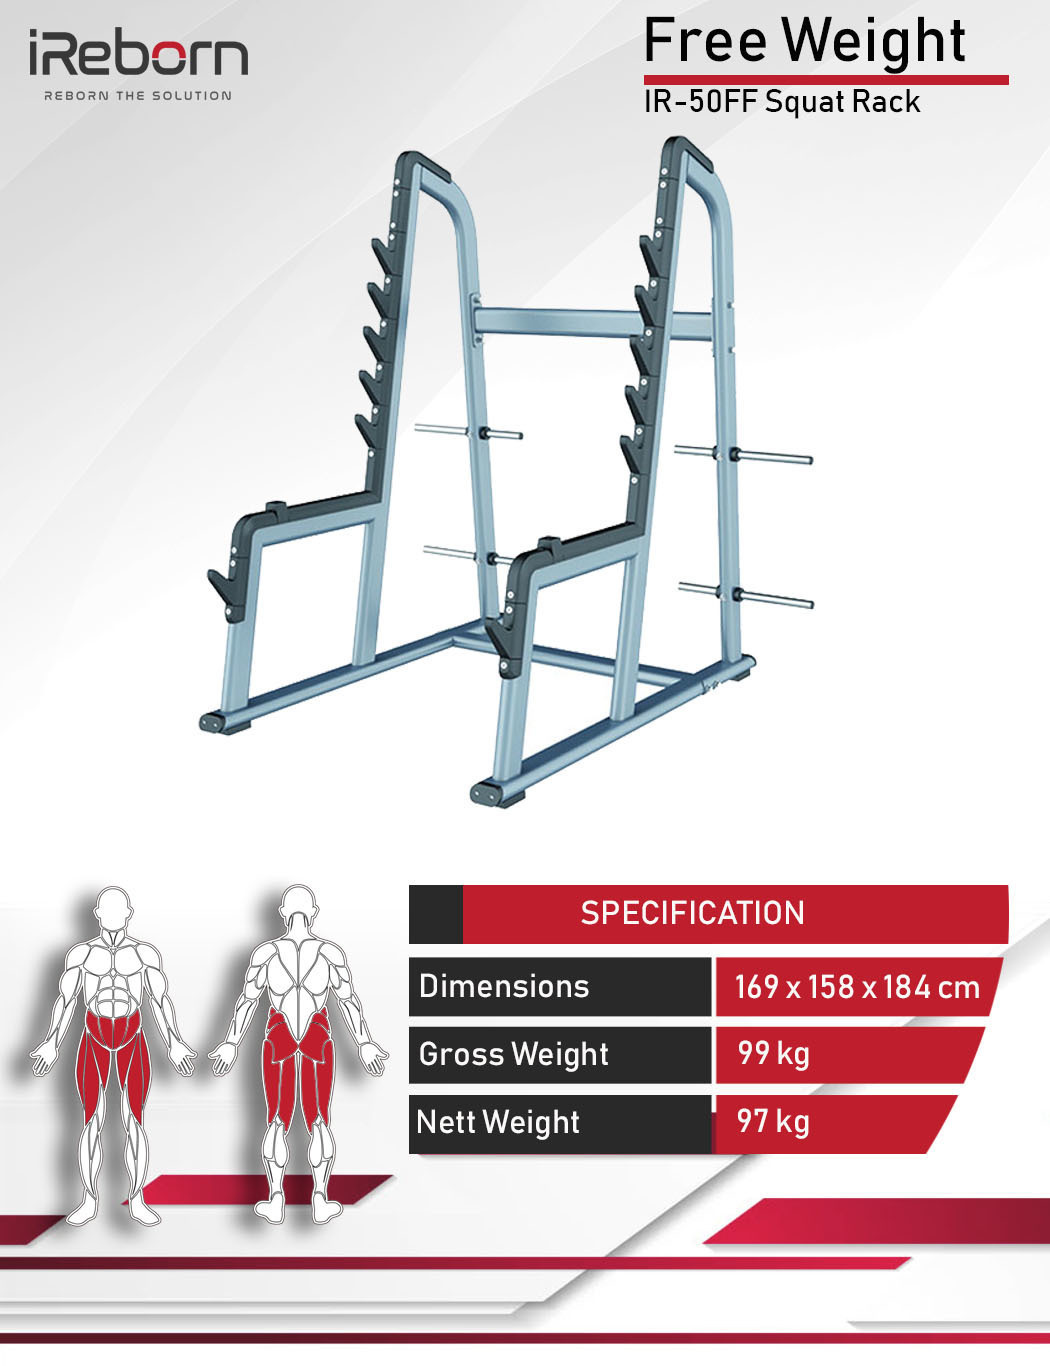 IR-50FF Squat Rack 10